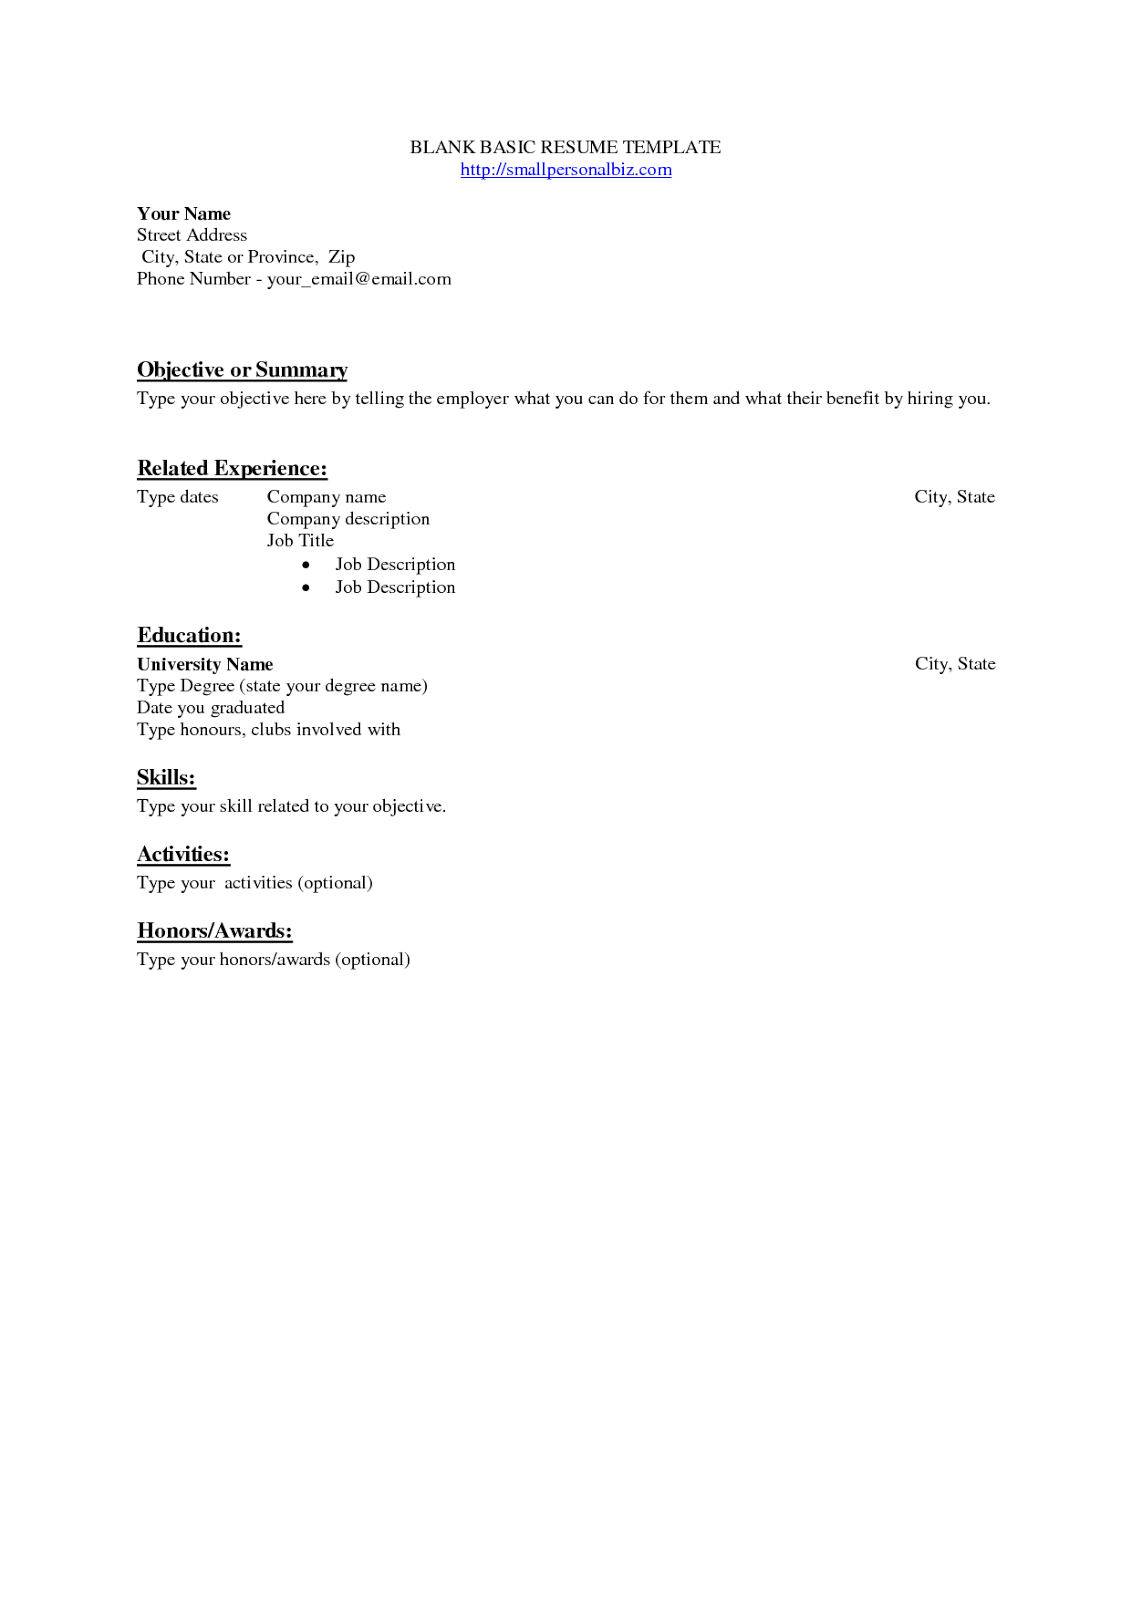 Resume Wizards Qld open office invoice templates download free – Blank Wage Slips